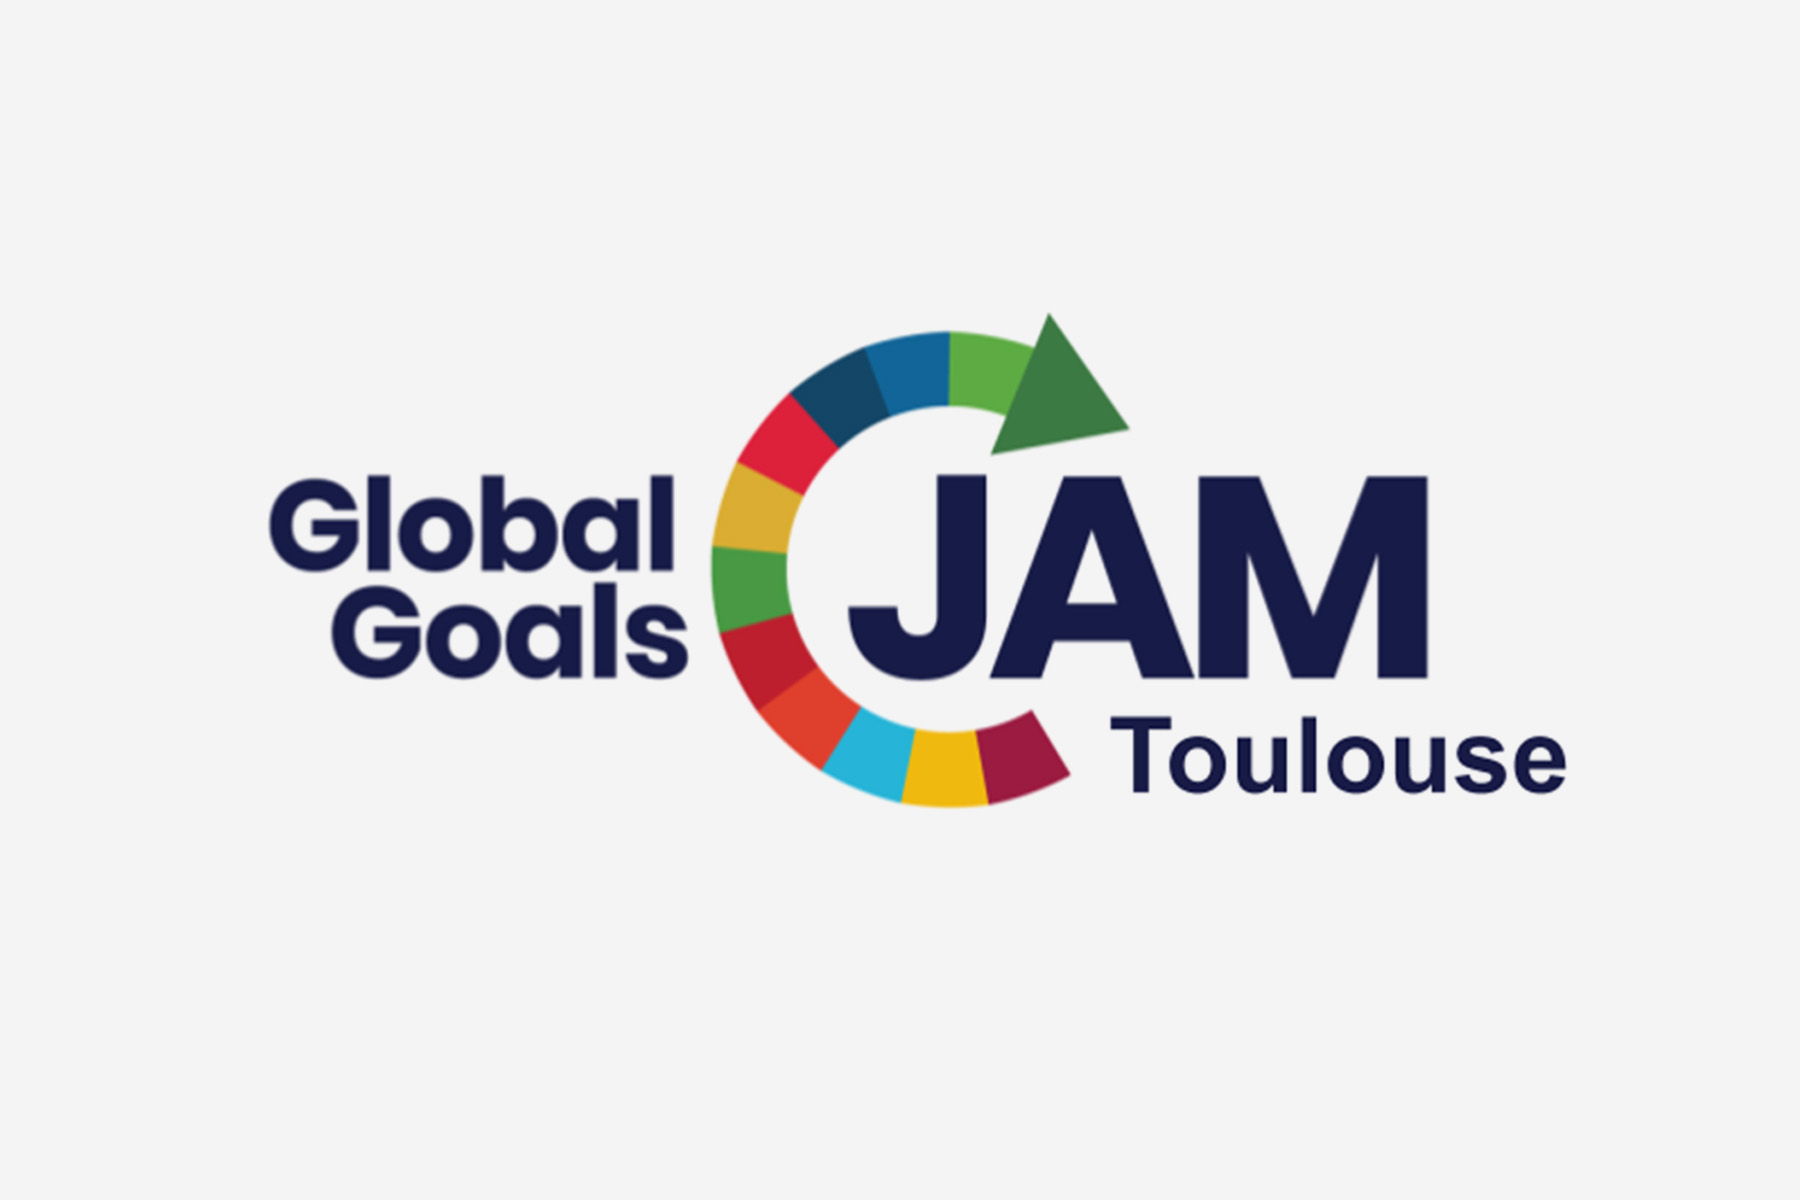 Global Goals Jam à Toulouse